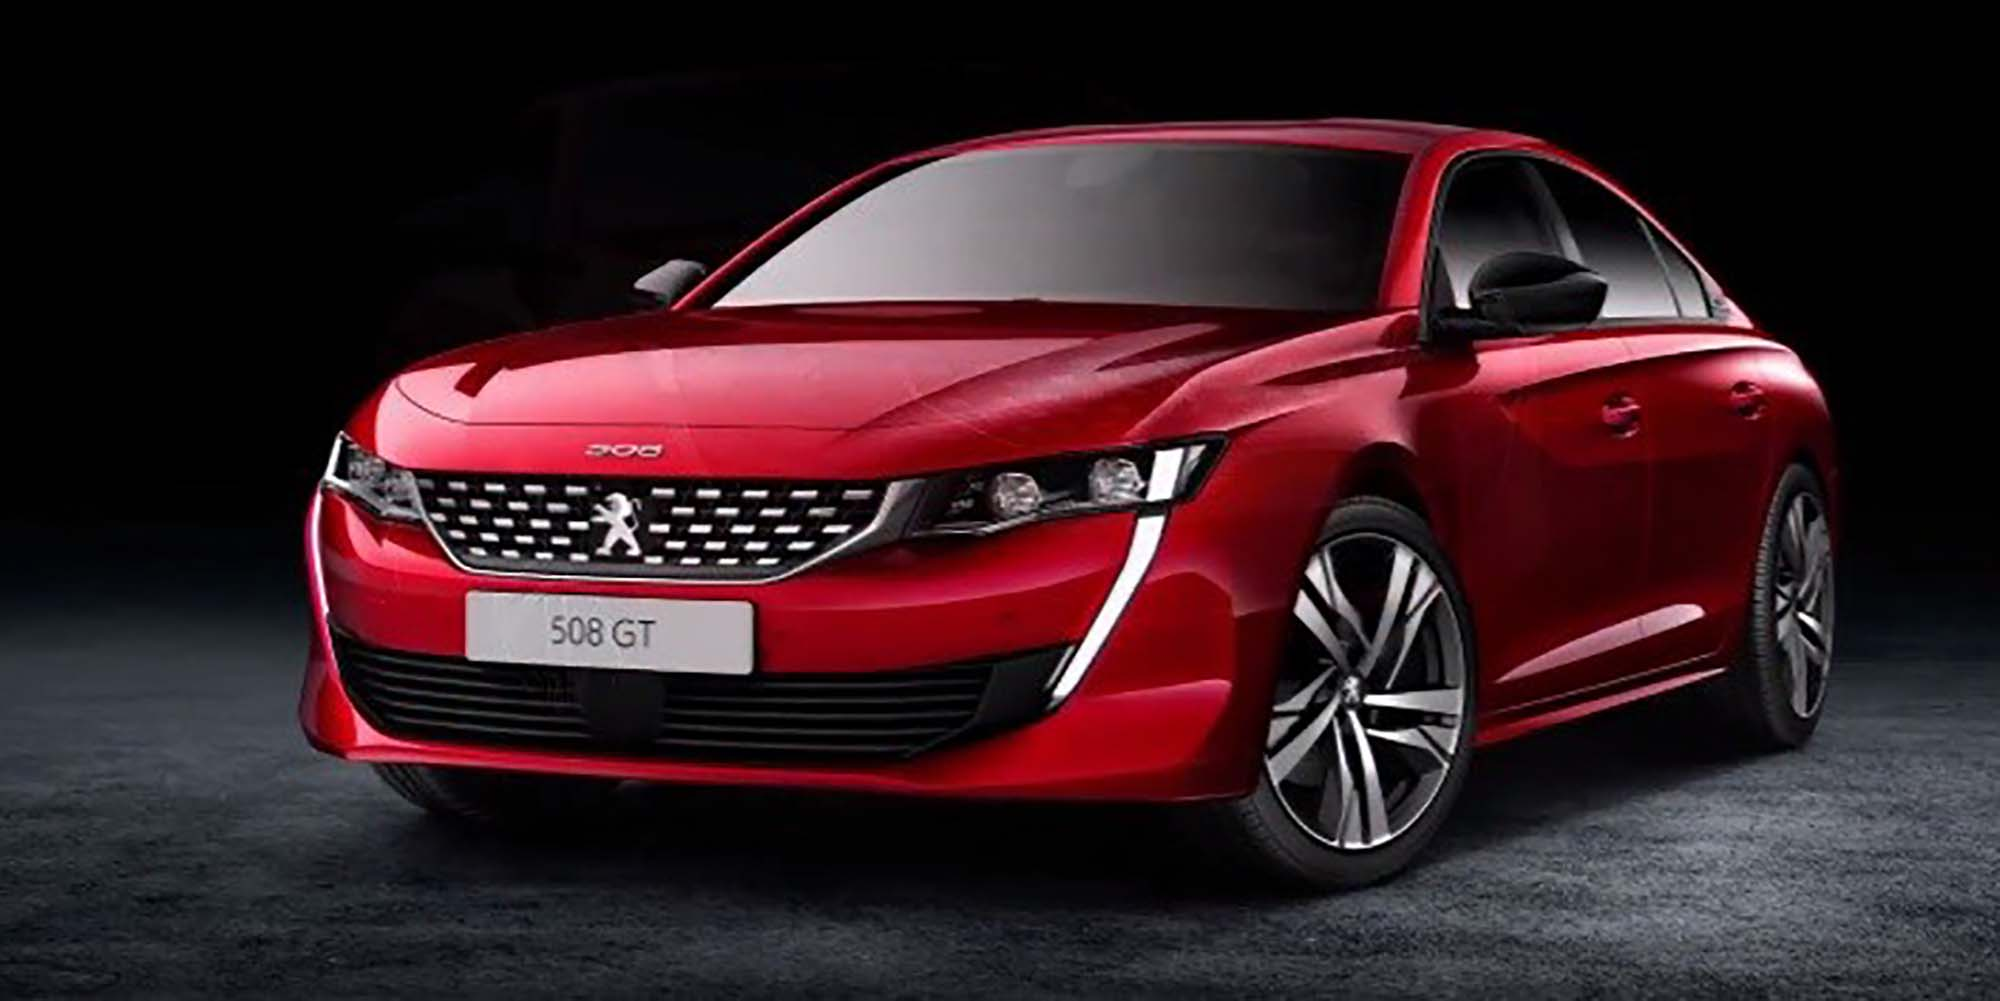 2018 Peugeot 508 Leaked Photos